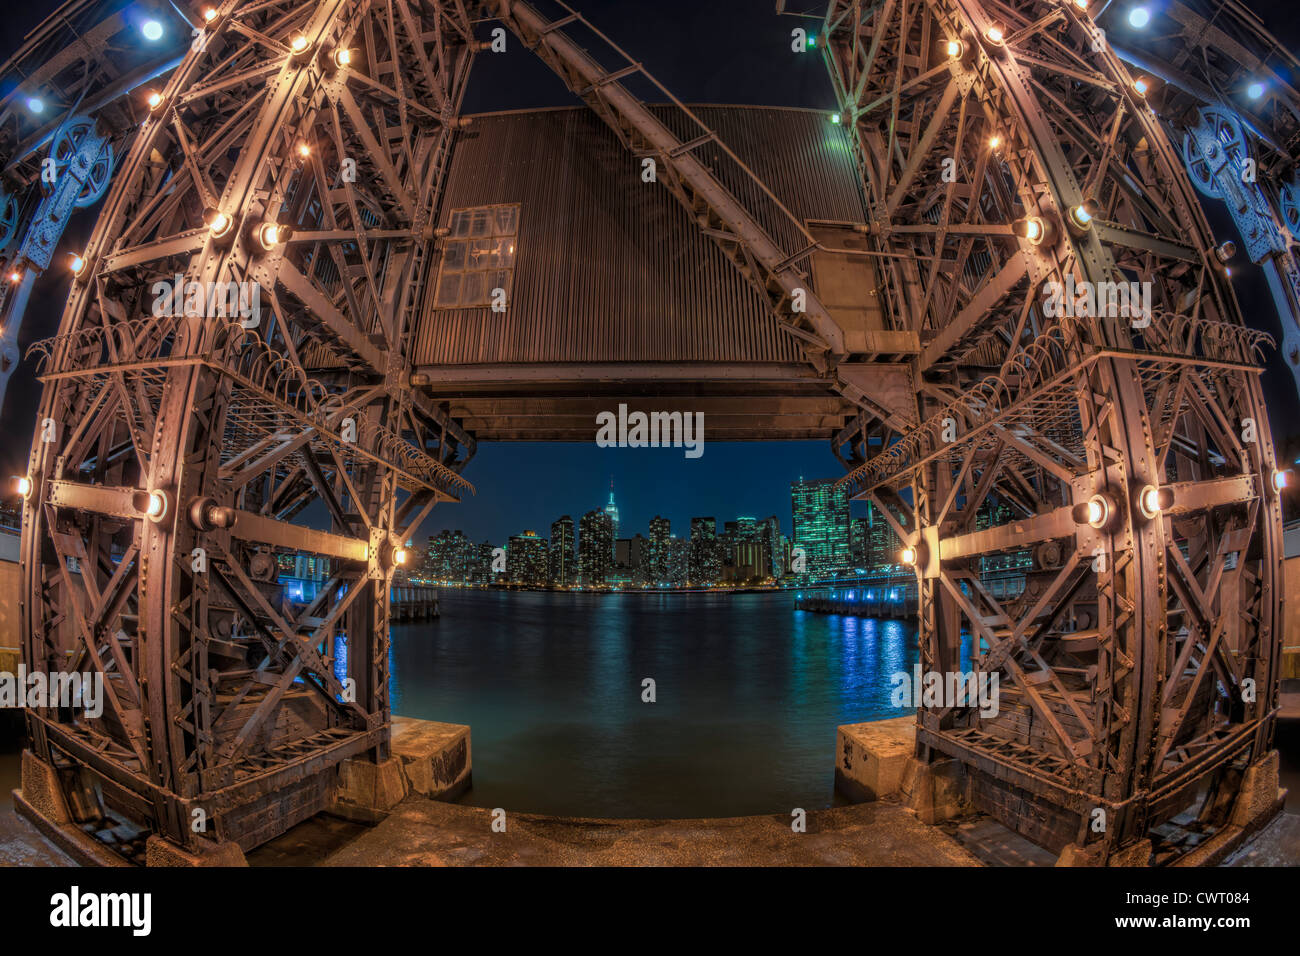 The Manhattan night skyline framed by one of the gantry cranes across the East River in Gantry Plaza State Park. - Stock Image